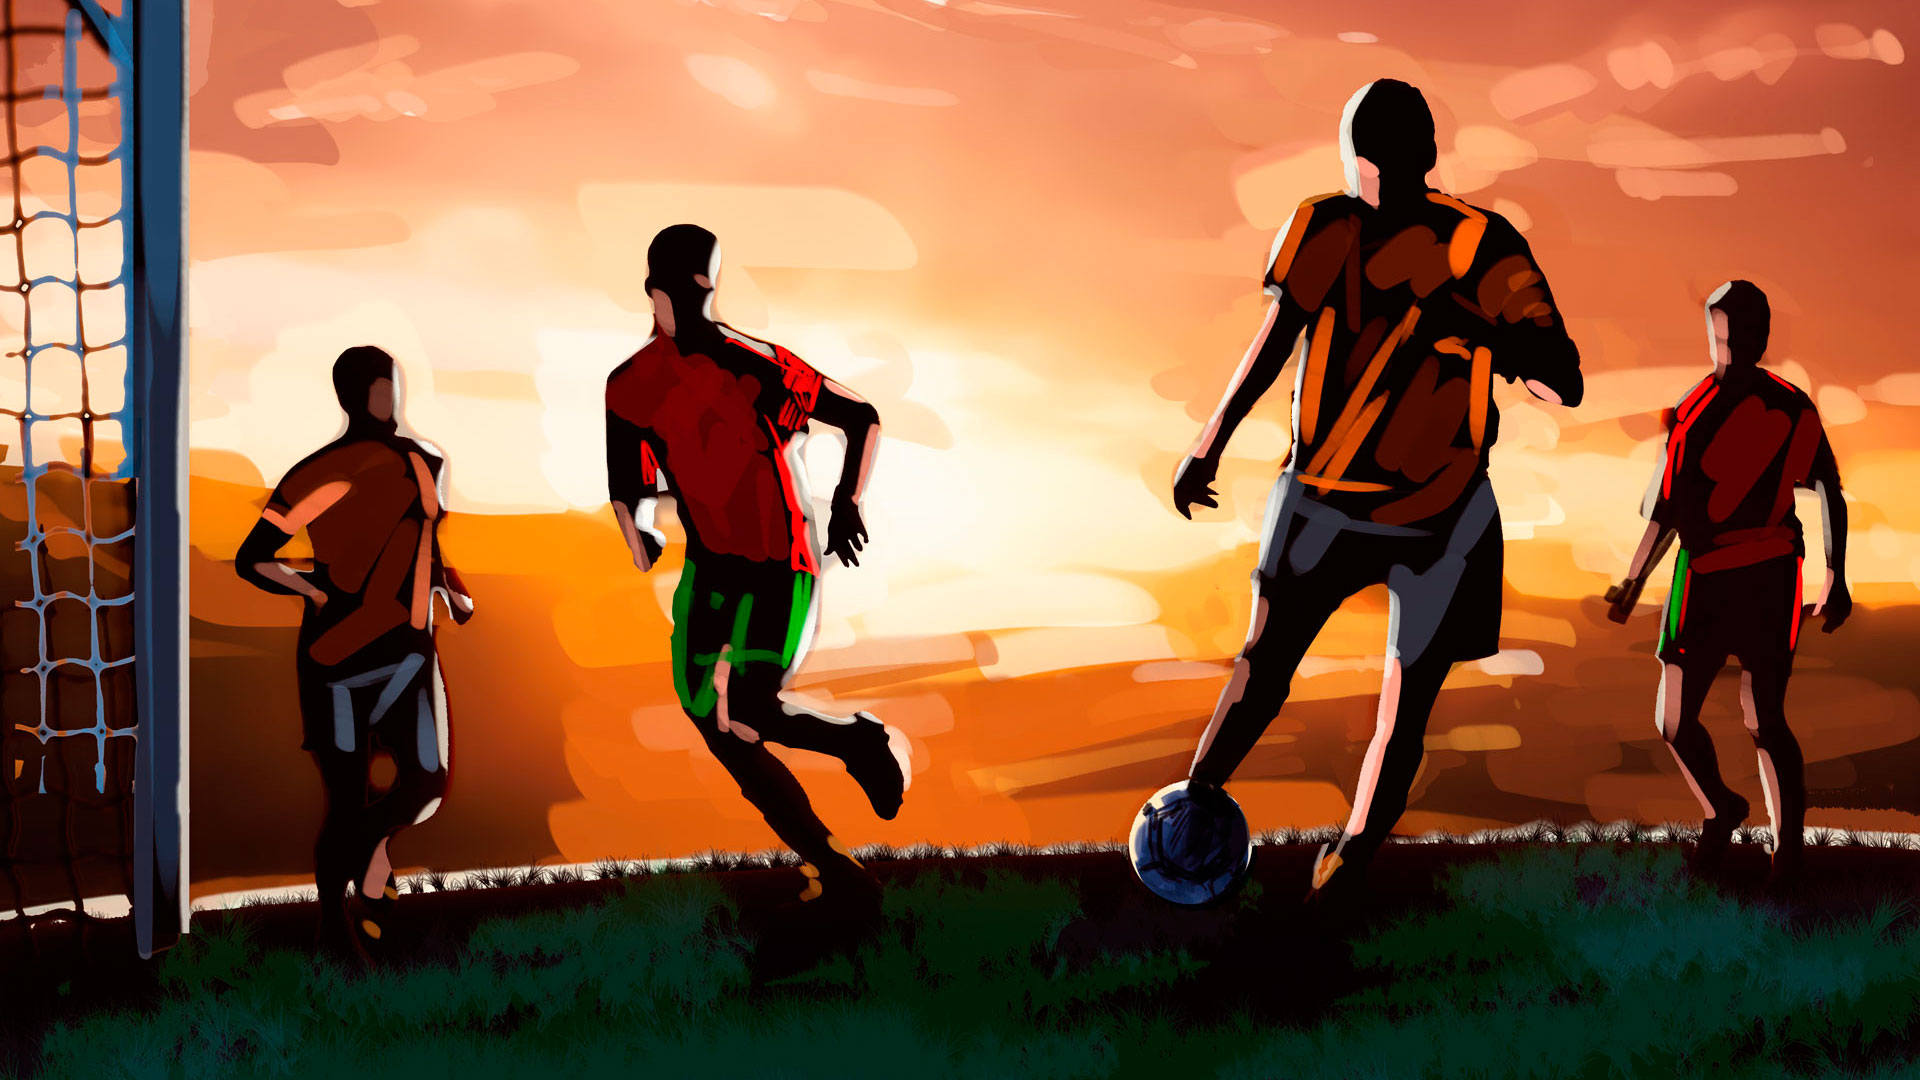 soccer game evening illustration, 'Famous matches - illustrations for web game